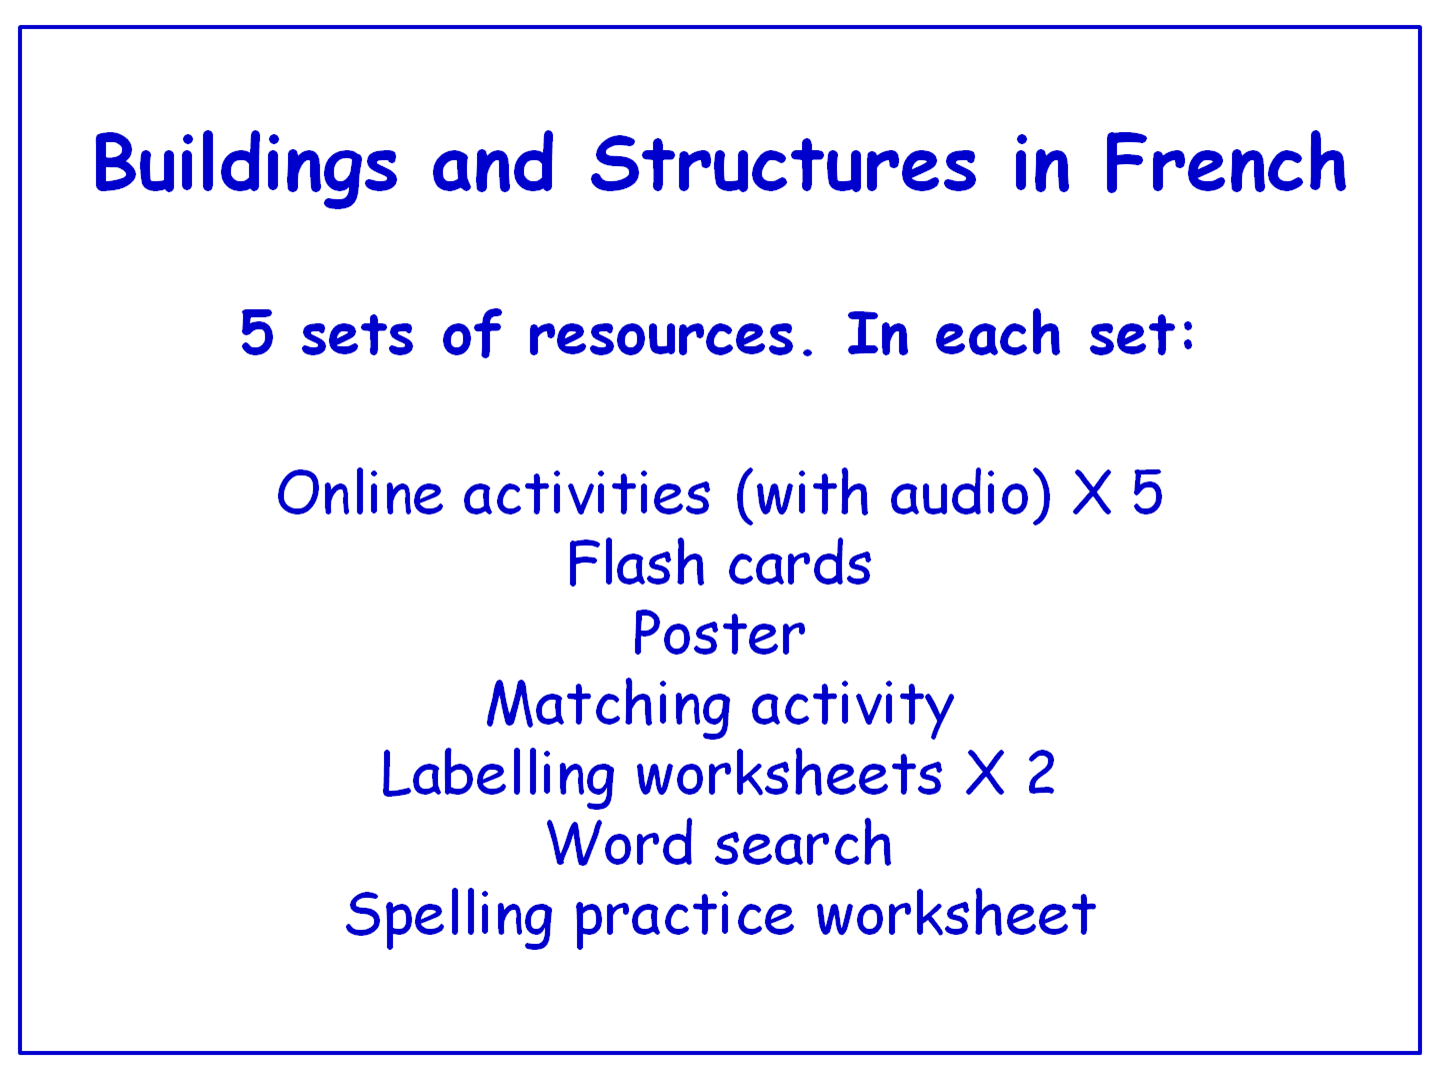 Buildings And Structures In French Worksheets Games